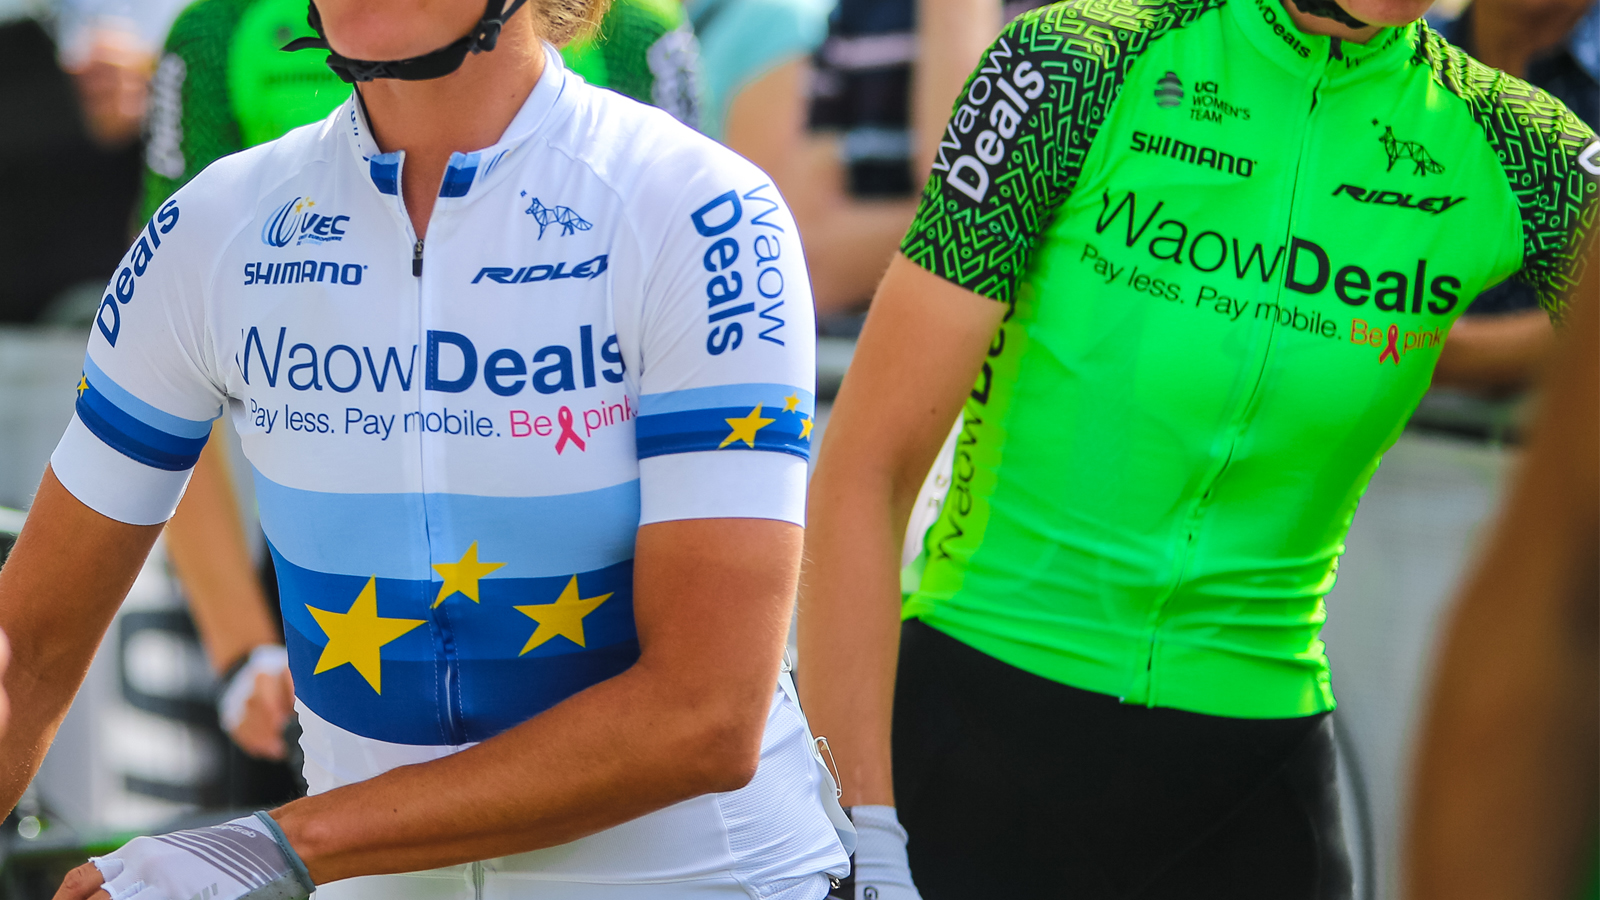 WaowDeals Pro Cycling supports fight against Breast Cancer